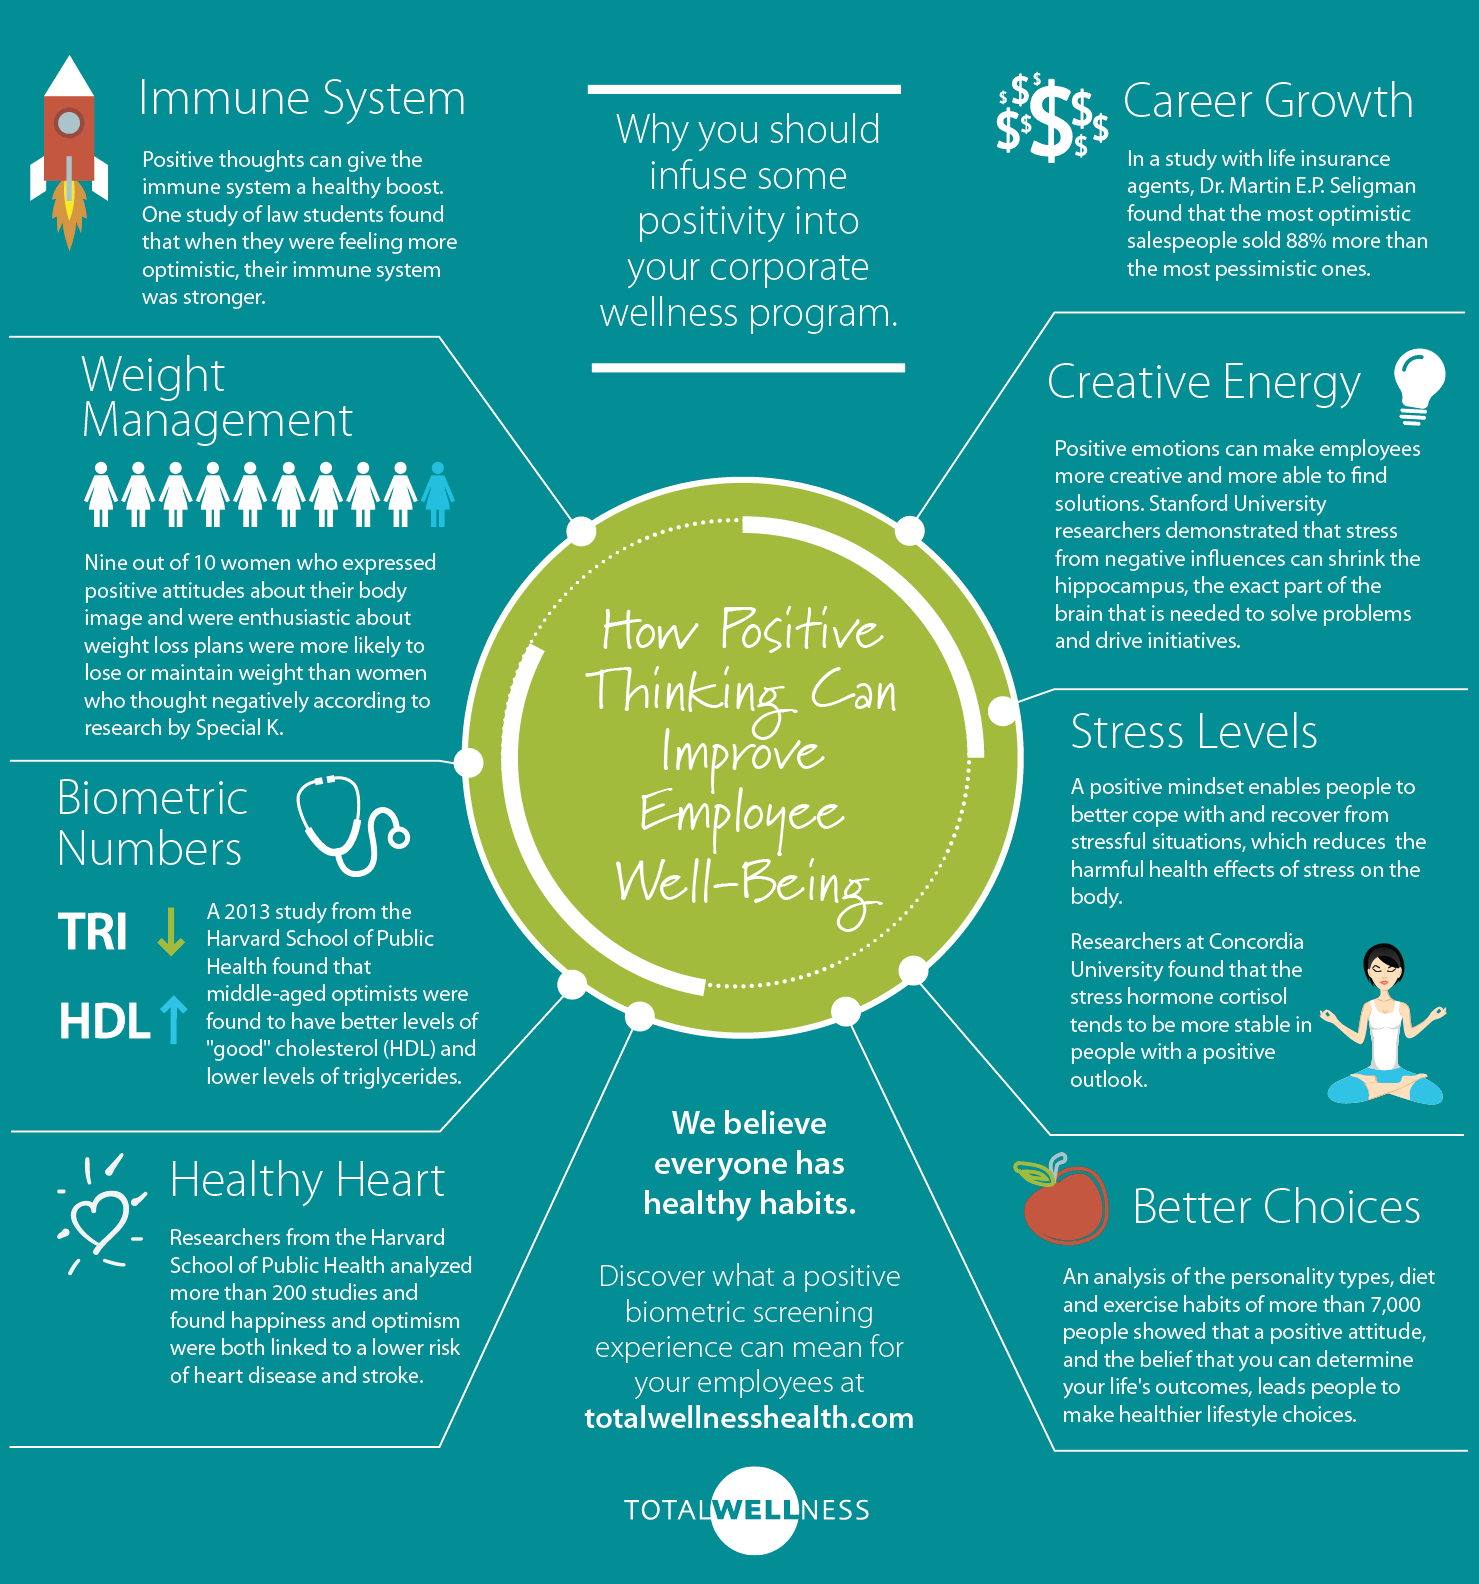 8 Ways Positive Thinking Can Improve Employee Well Being Infographic